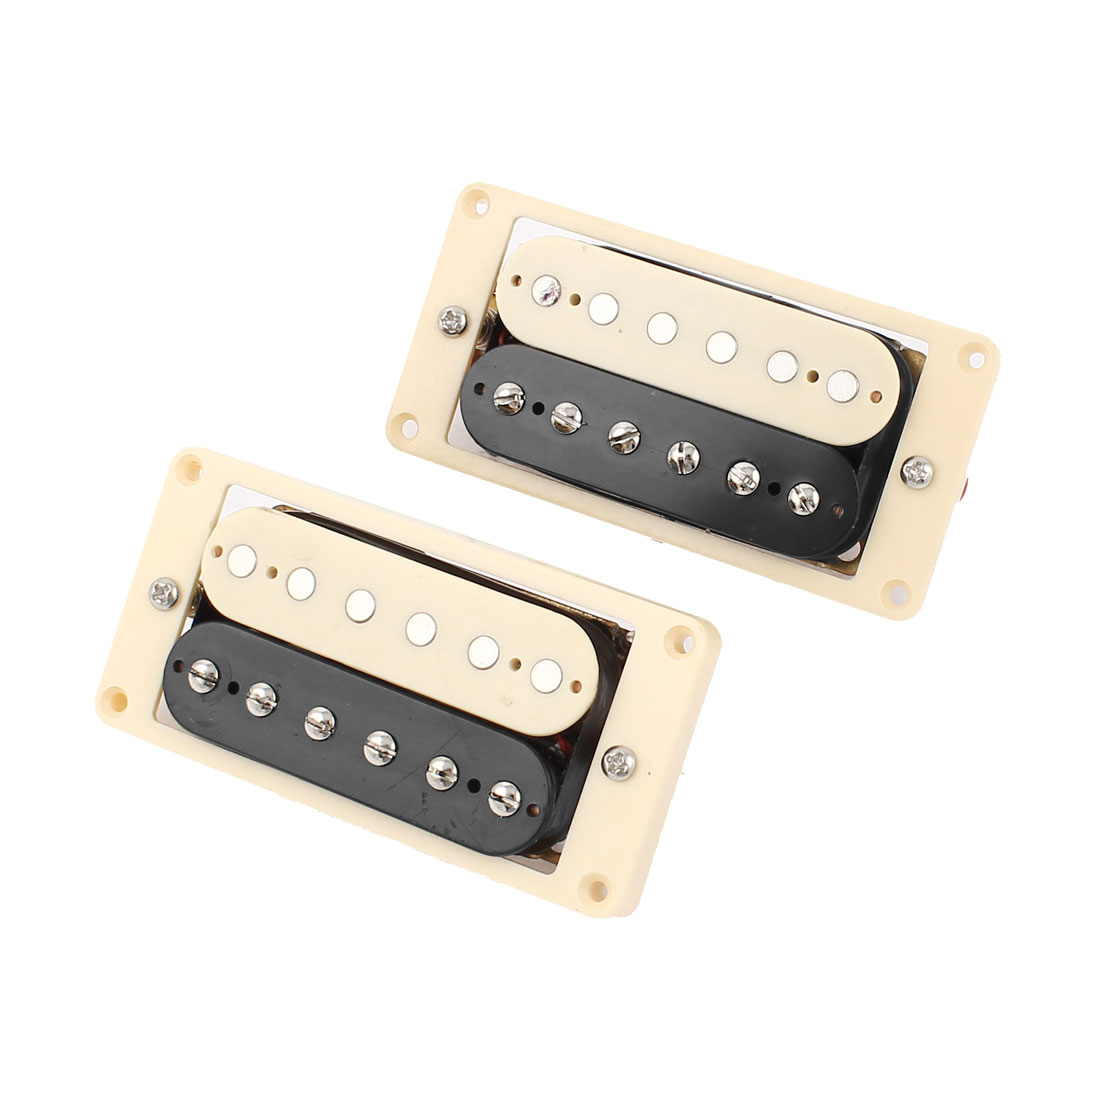 2 Pcs Electric Guitar ST Double Row Neck Bridge Pickups Black Beige